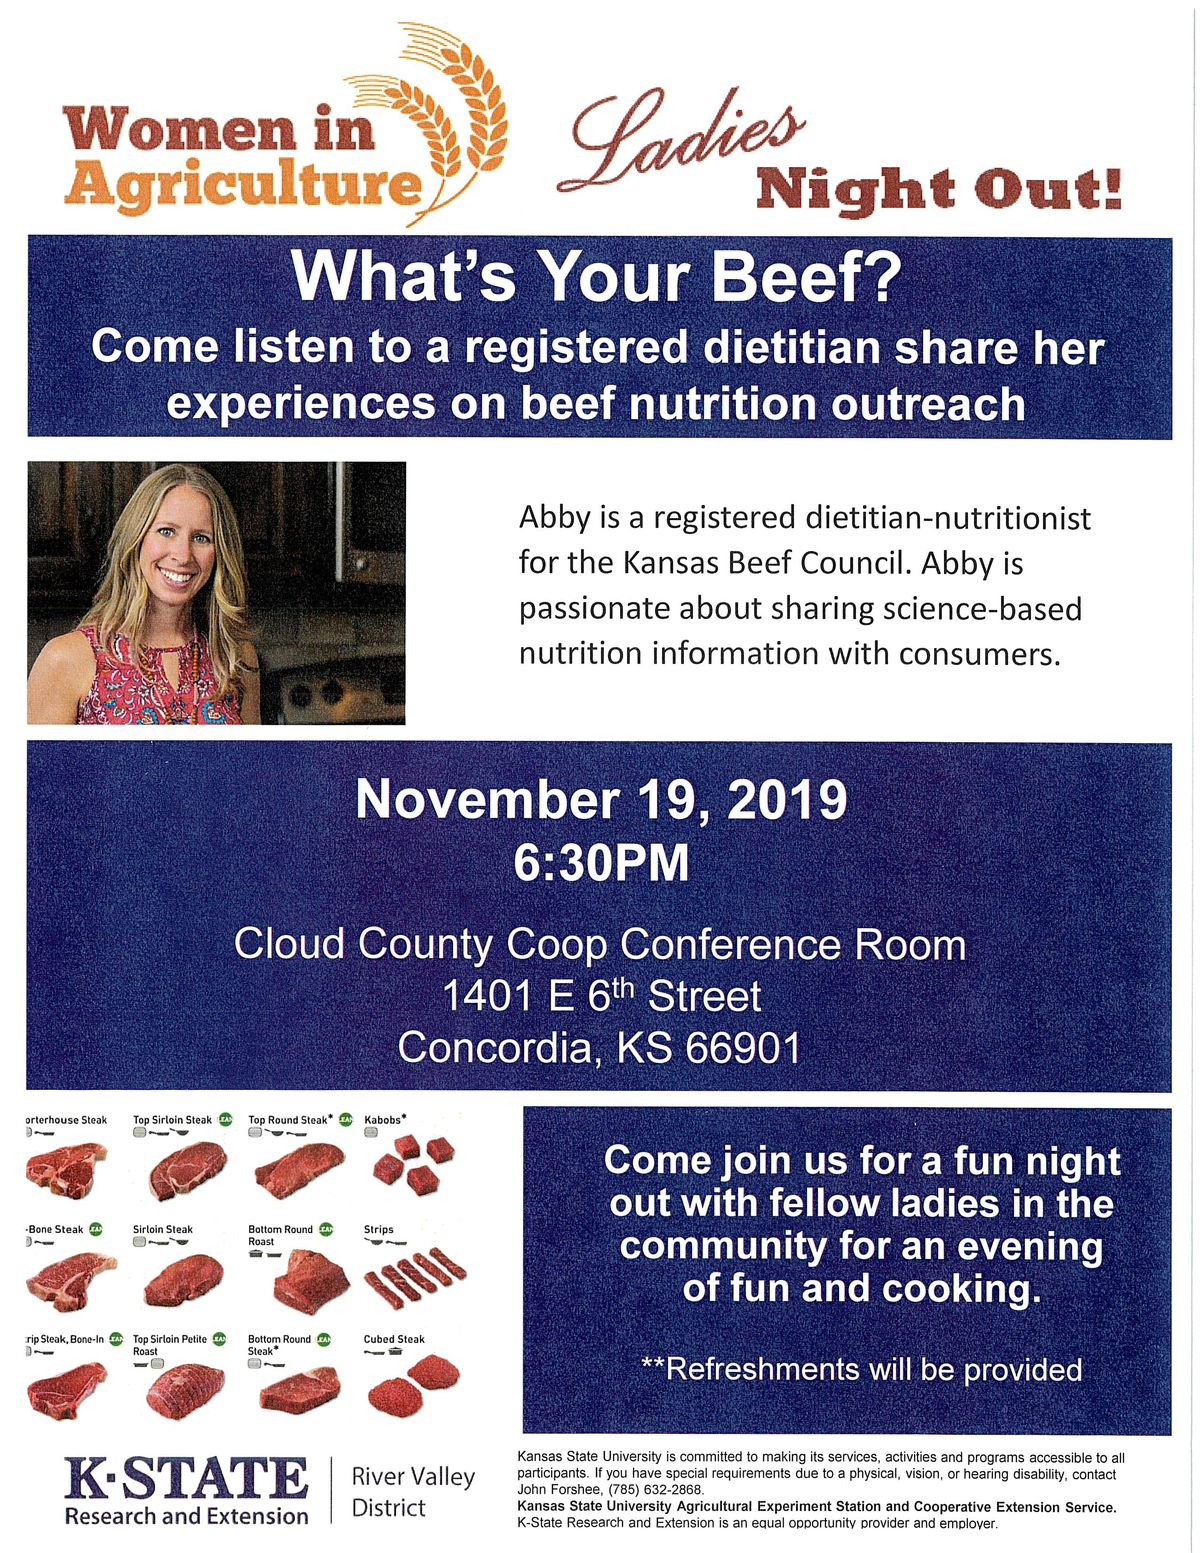 2019 Ladies Night Out What's Your Beef Flyer